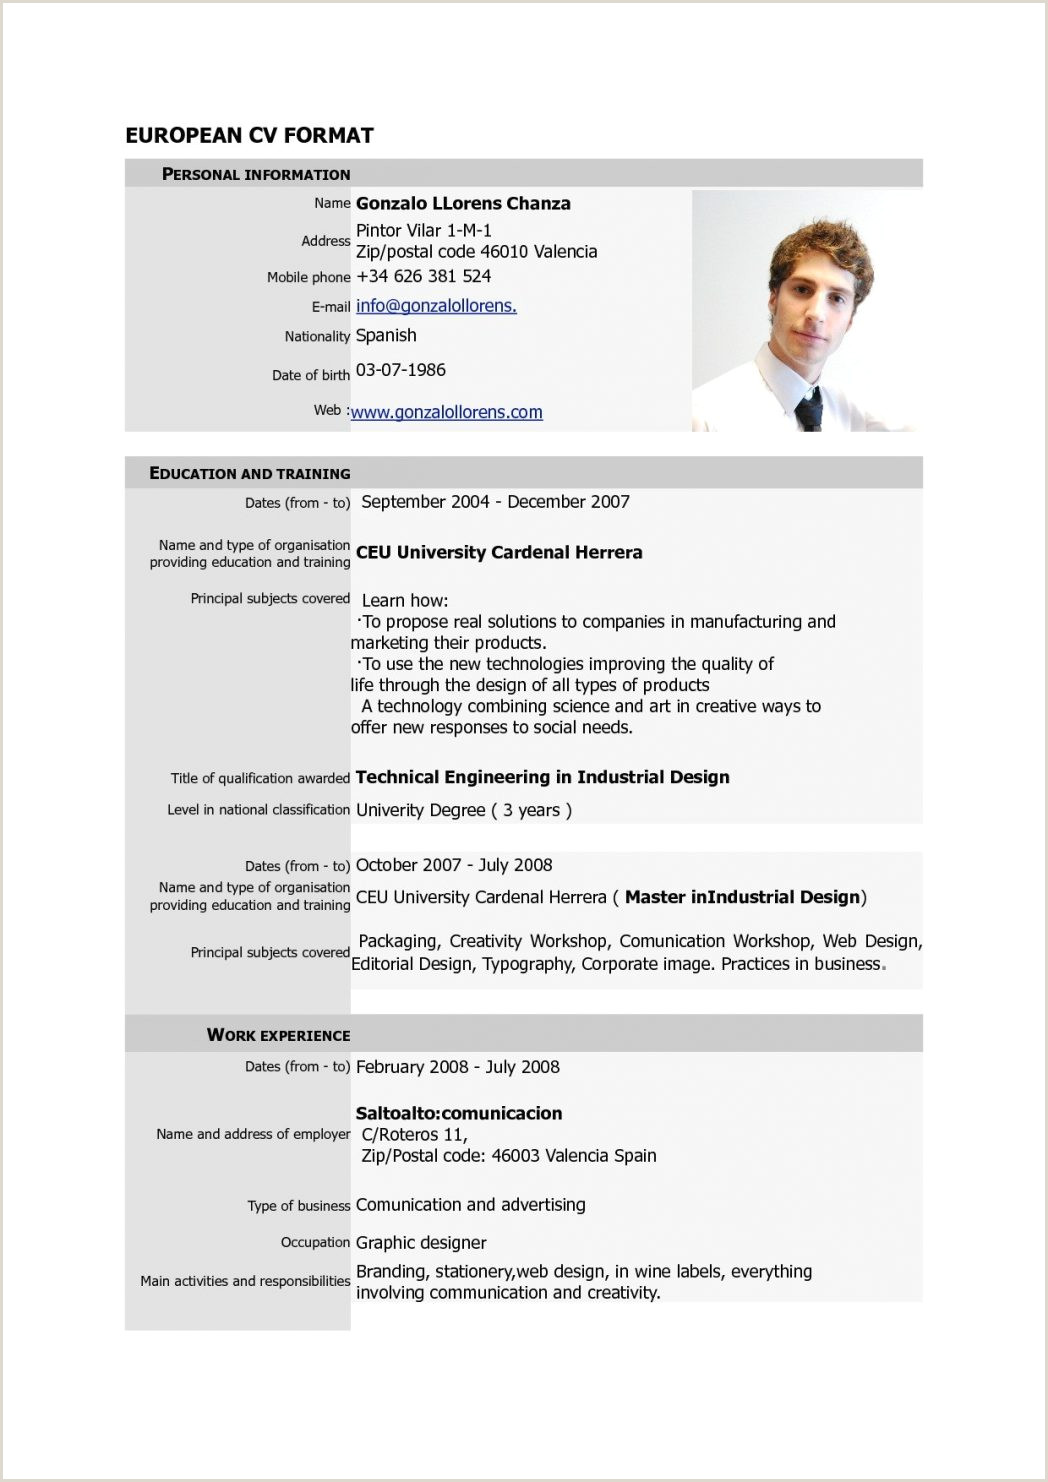 Resume Format Download In Ms Word For Fresher Mechanical Engineer Simple Format Latest For Freshers 2019 In Ms Word 2012